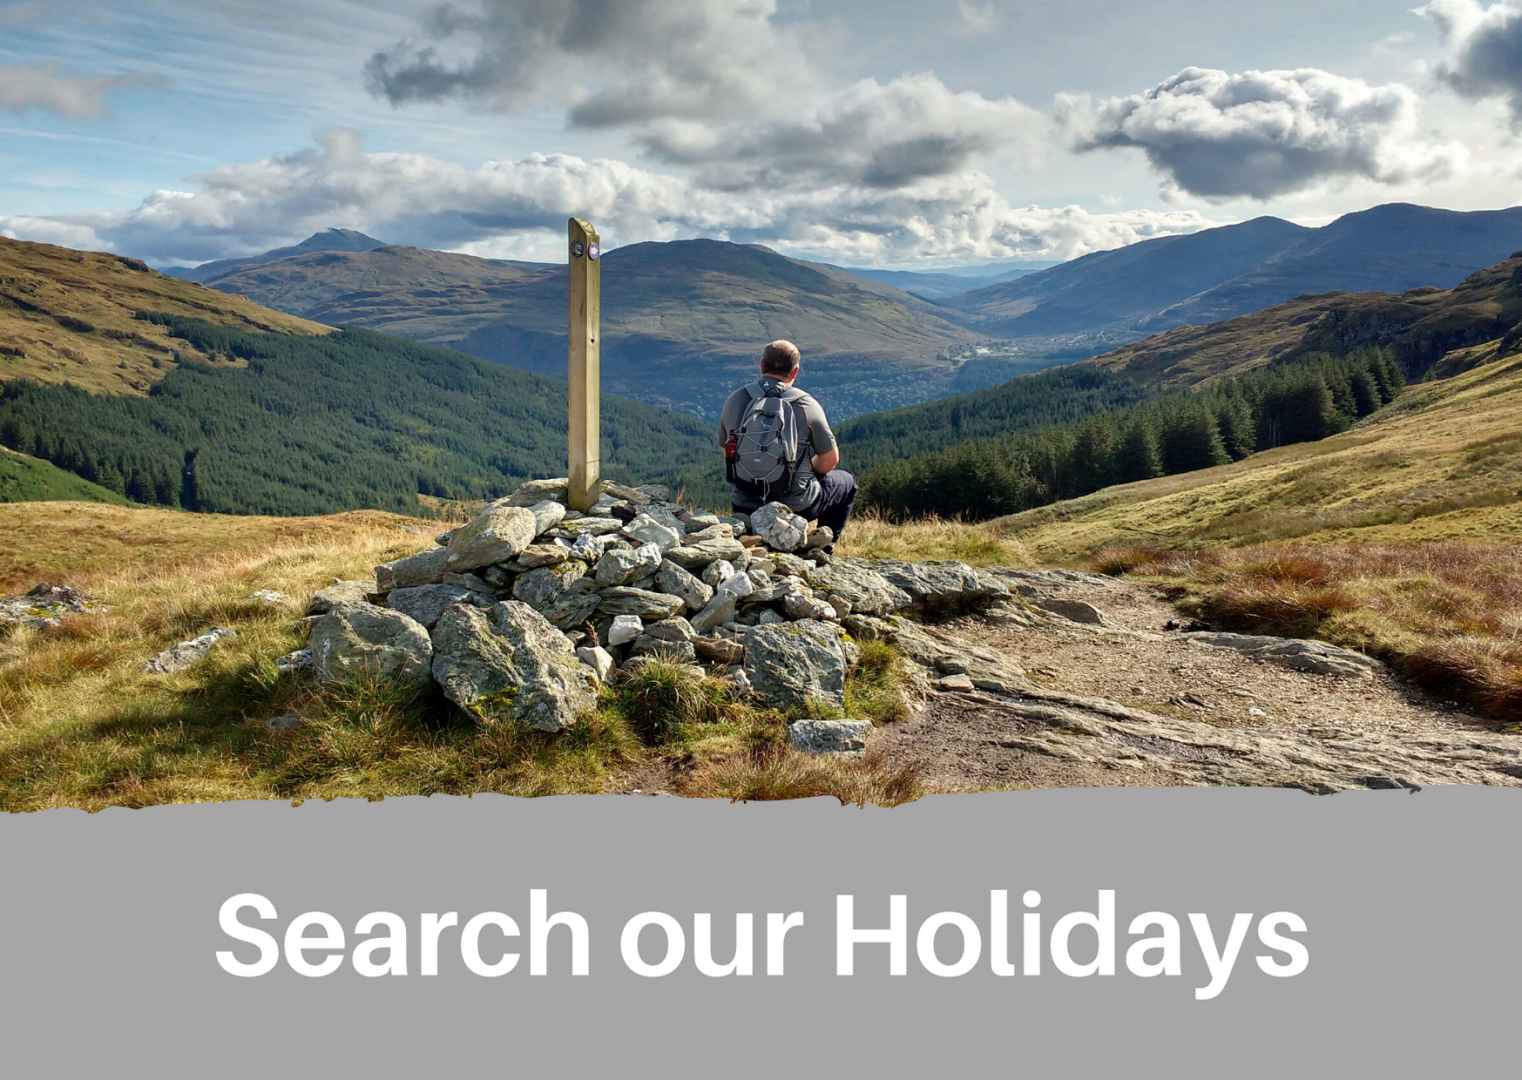 Search Our Holidays